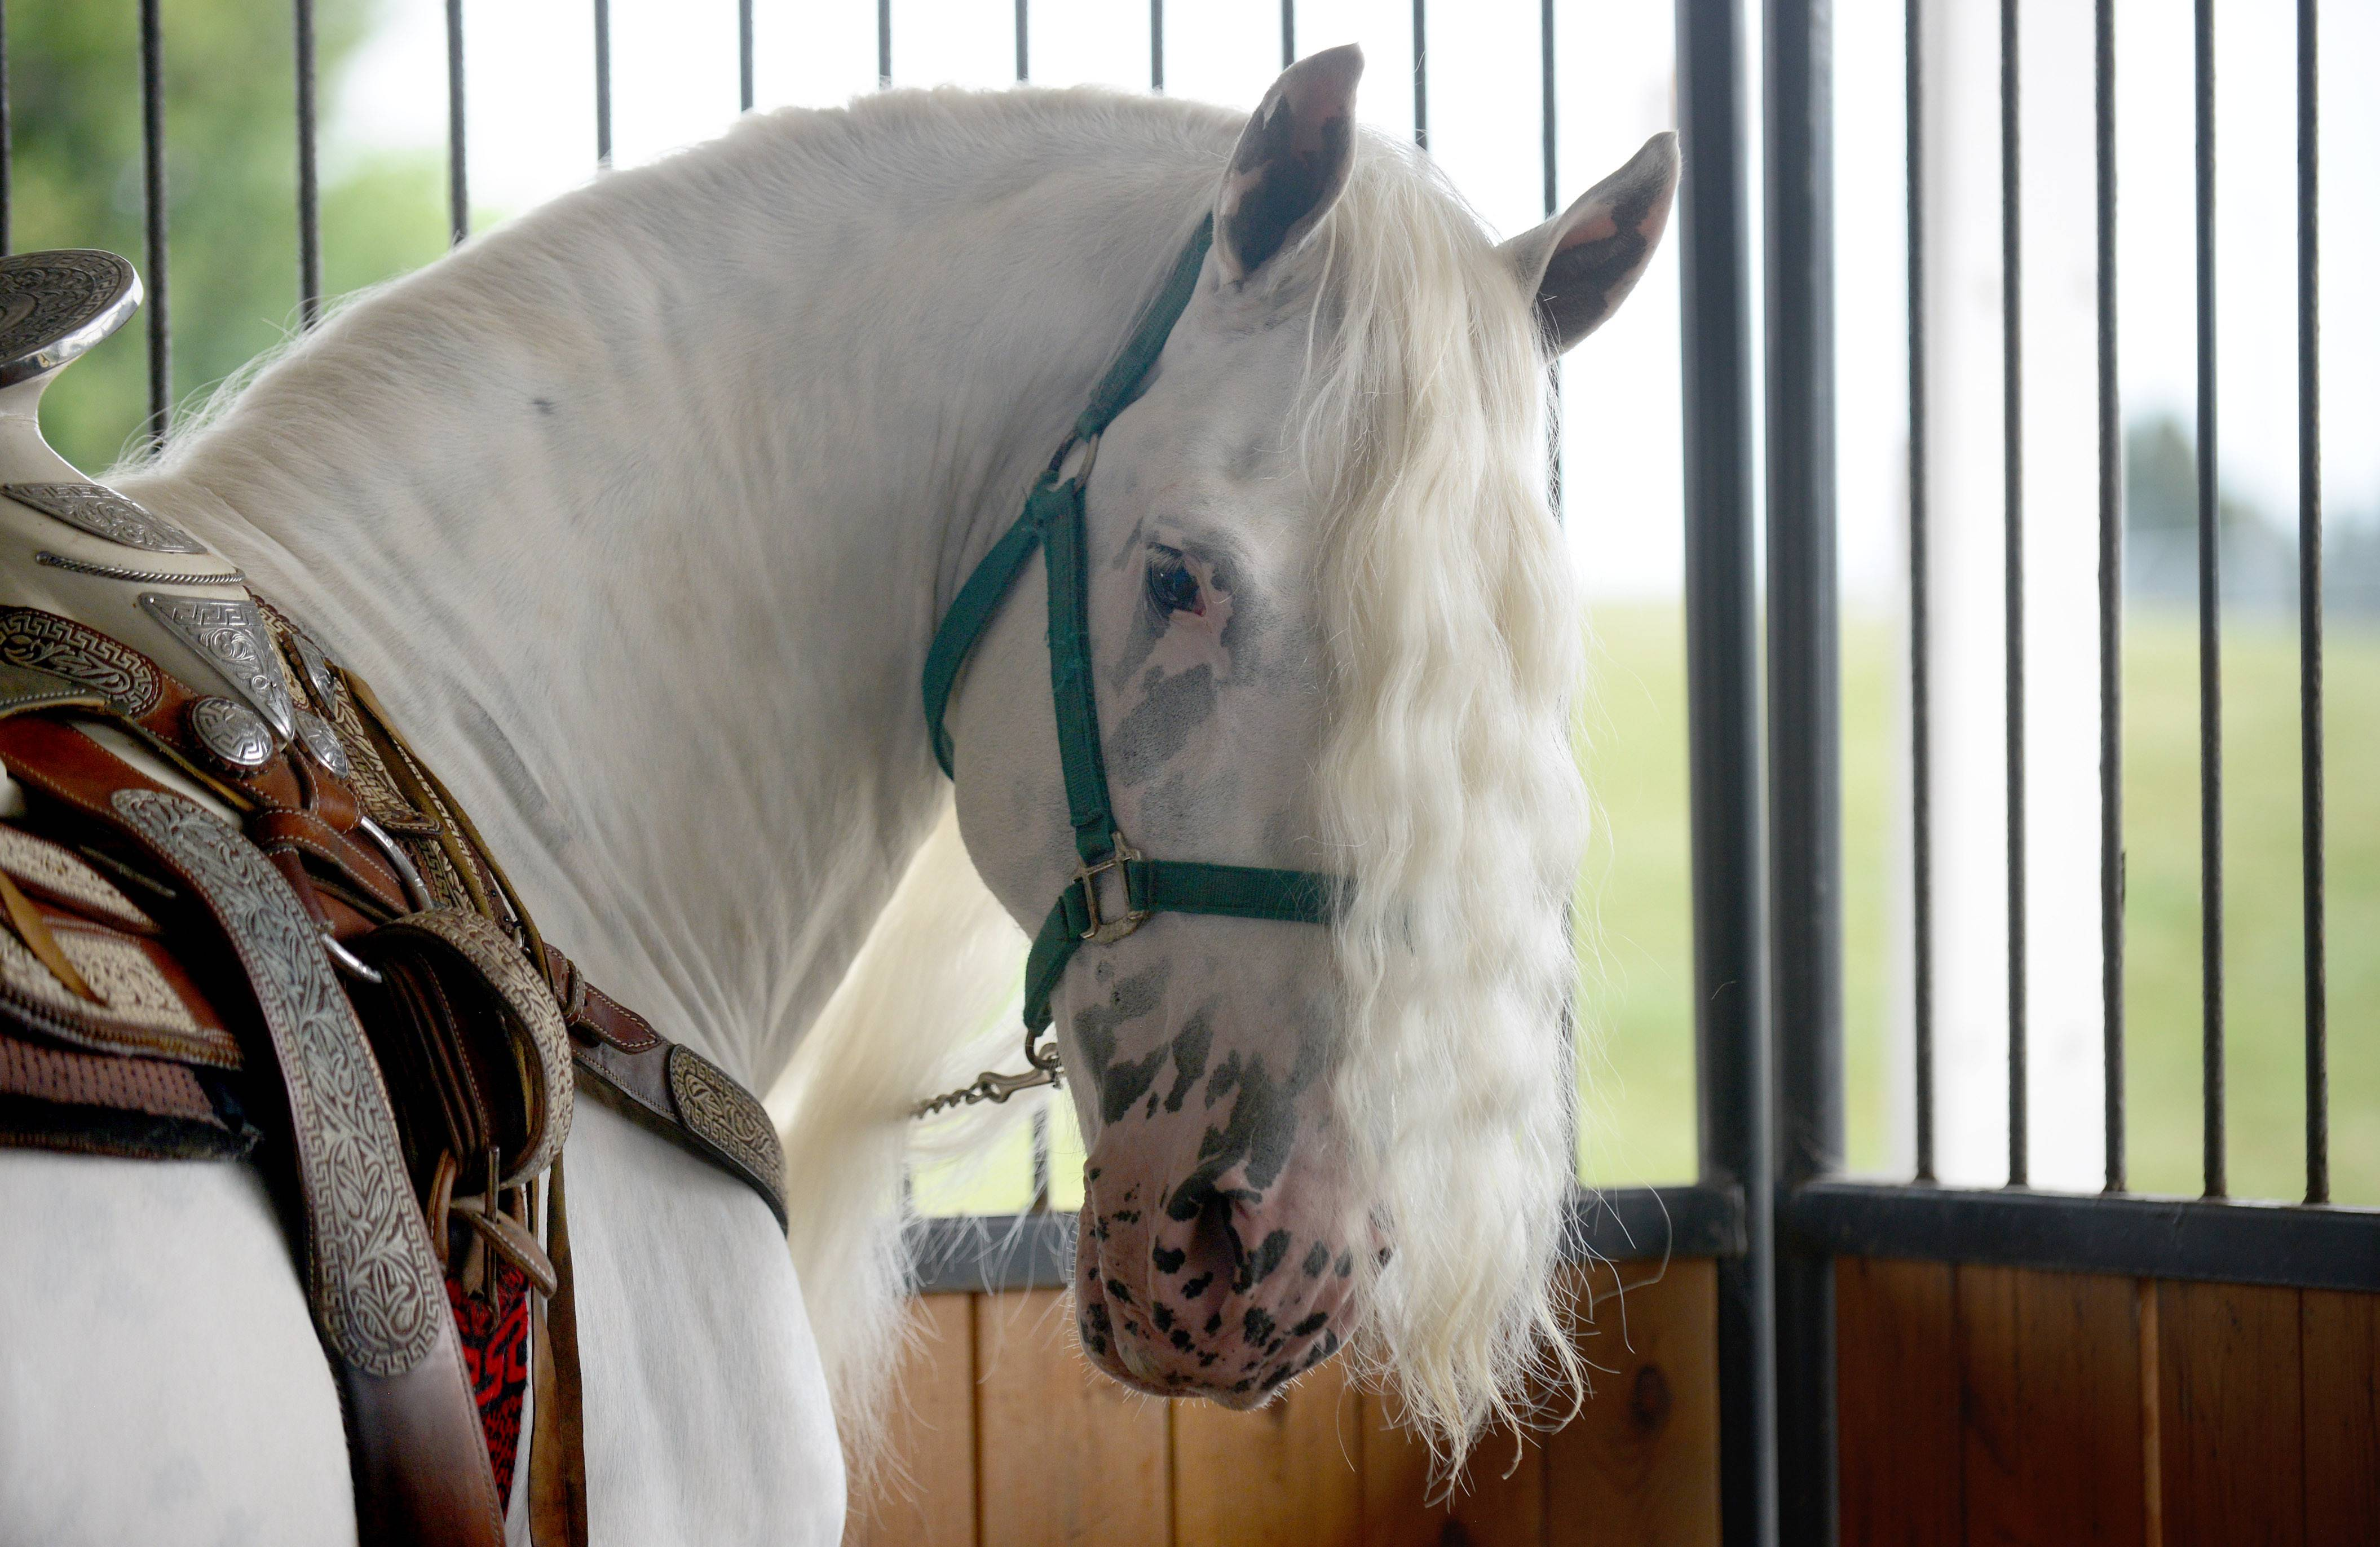 Mystic Warrior, a Fresian/Appaloosa mix horse waits to perform at the Festival of the Horse and Drum in St. Charles on Saturday. The rare white horse with black dappling is owned by Joe Trujillo of Wayne.